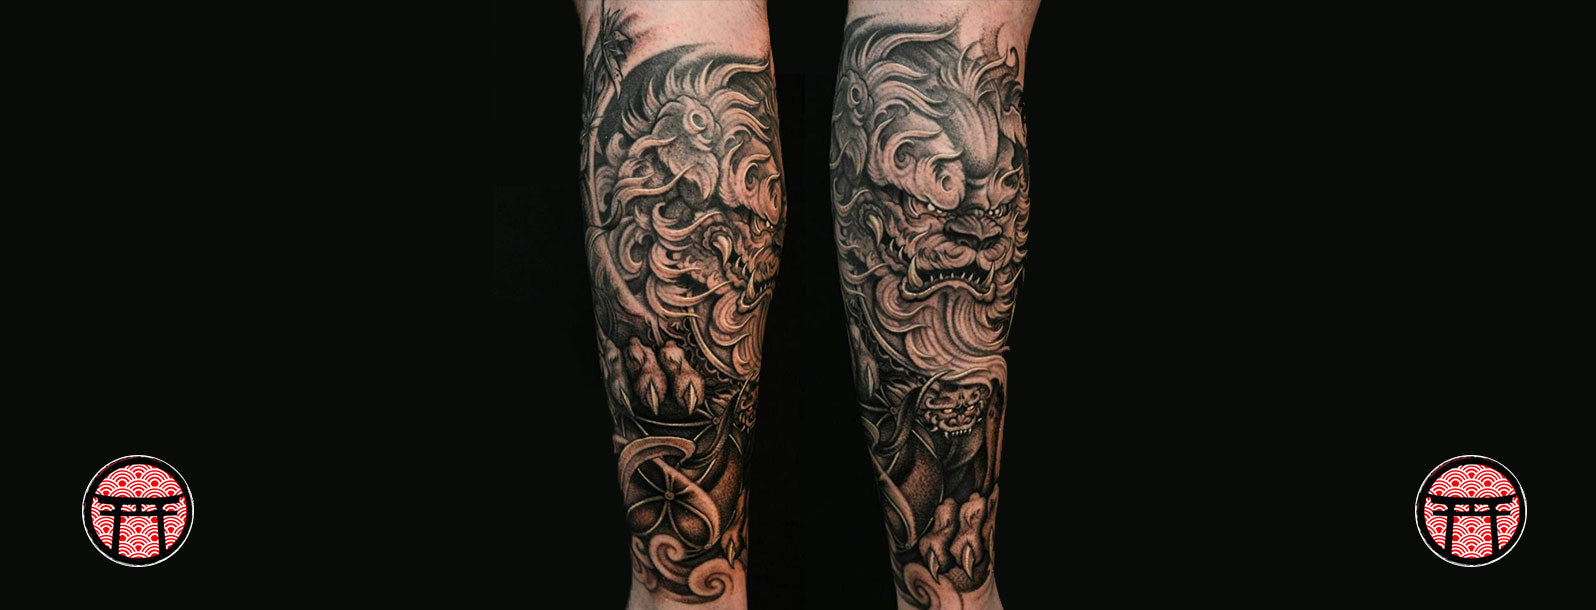 tatouage-fu-dog